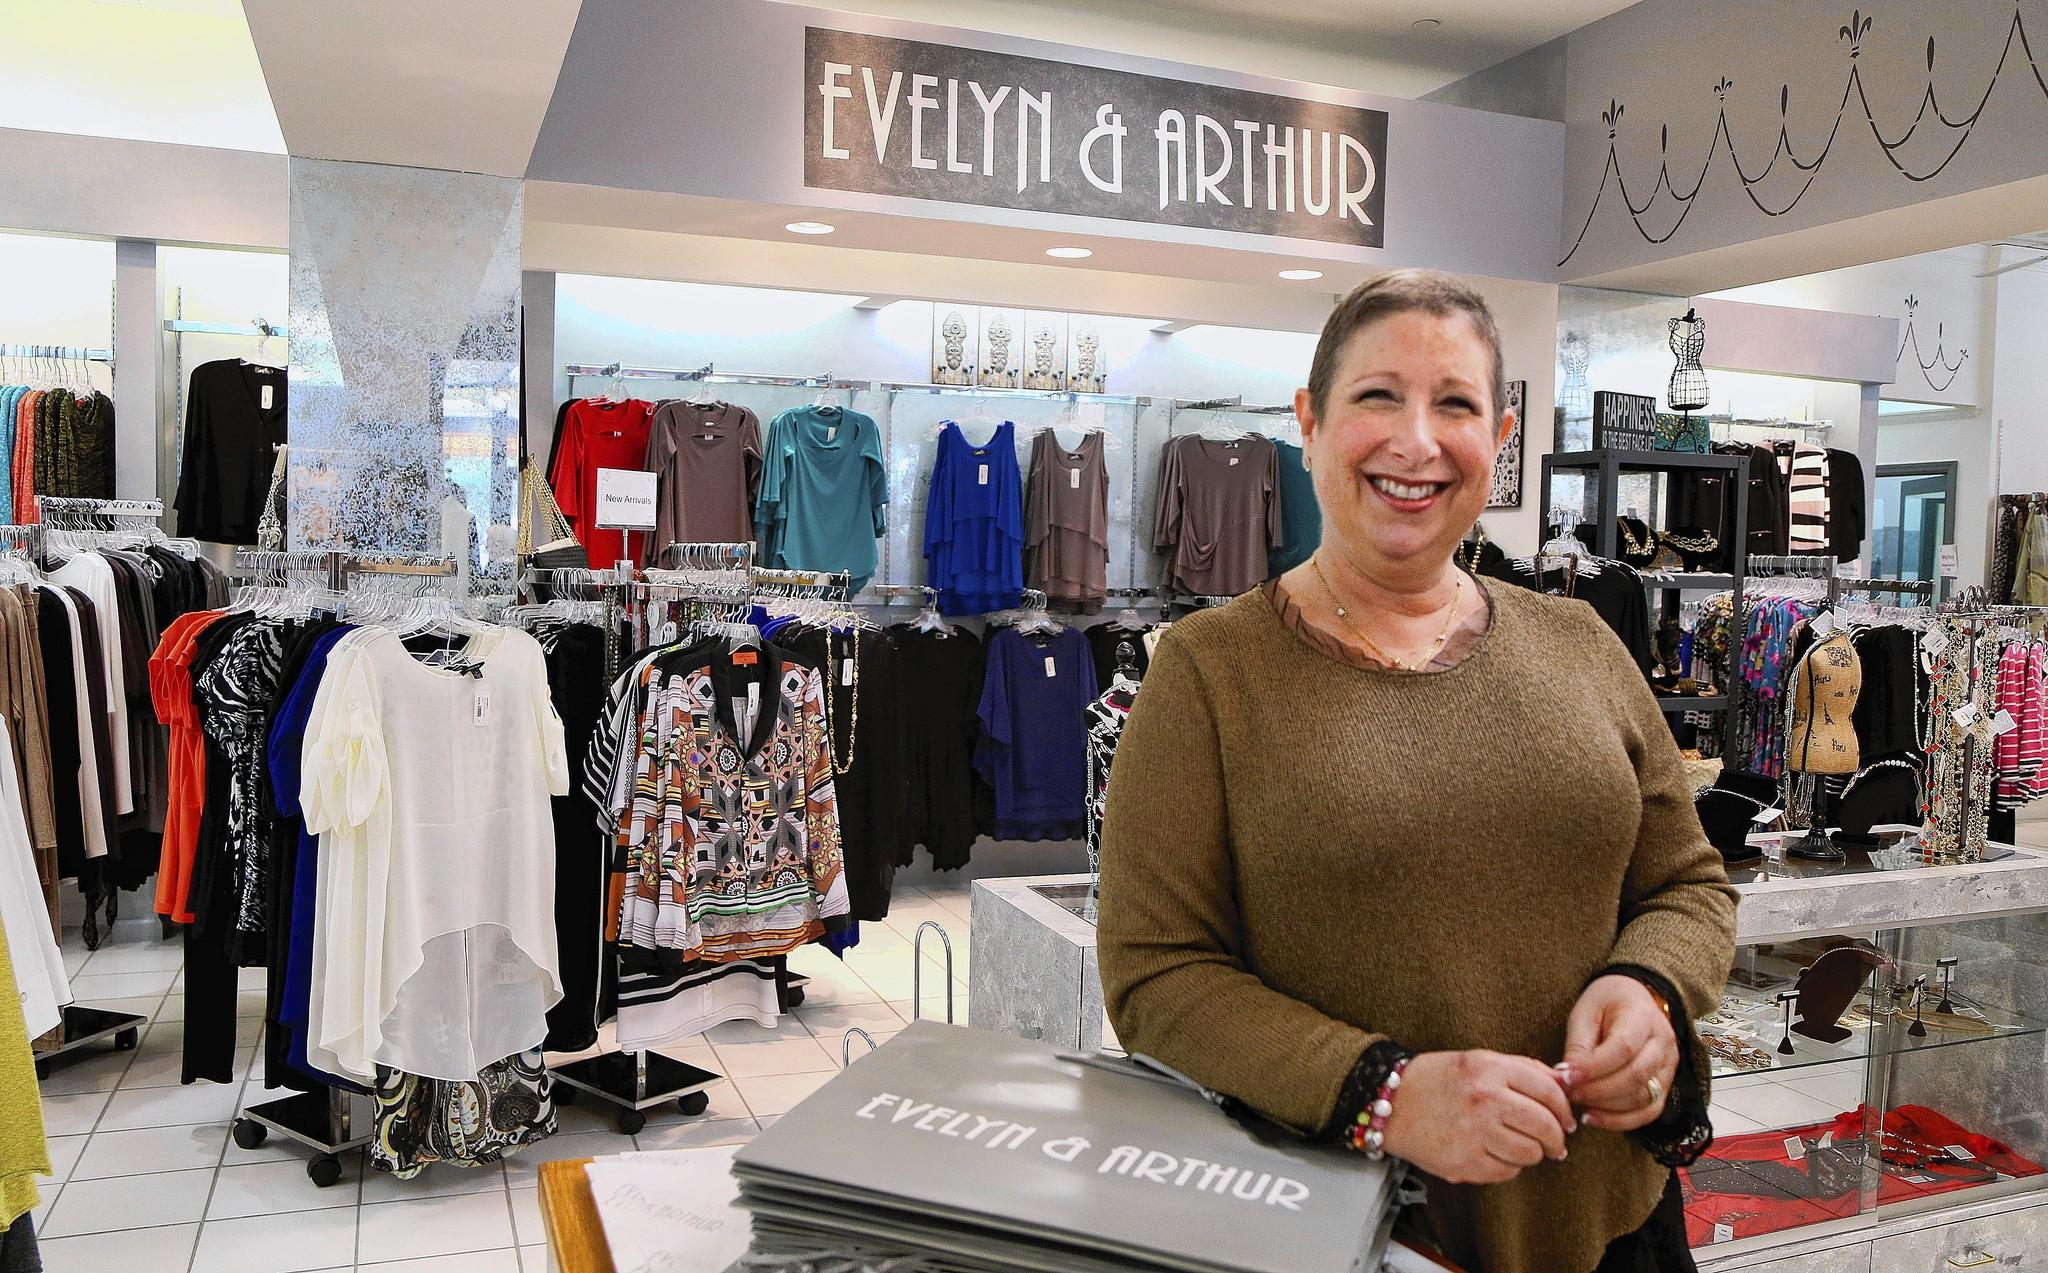 Three years after taking over her parents' Evelyn & Arthur chain of clothing stores, Adrianne Weissman has hit upon an unconventional marketing approach that works: helping local charities.